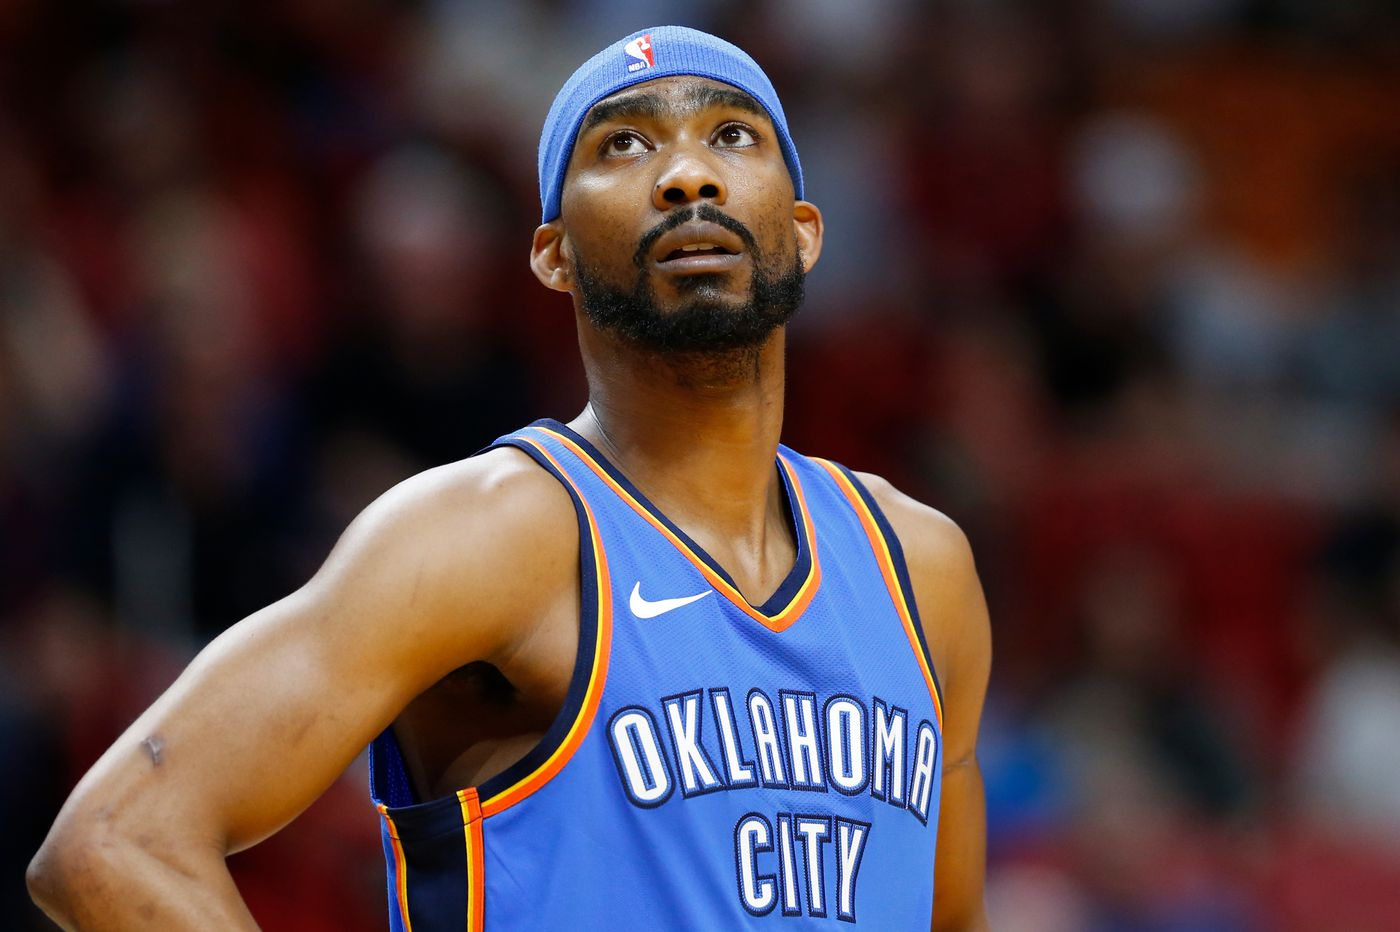 Sixers sign Corey Brewer to 10-day contract; he has 3 points, 2 assists, steal vs. Timberwolves